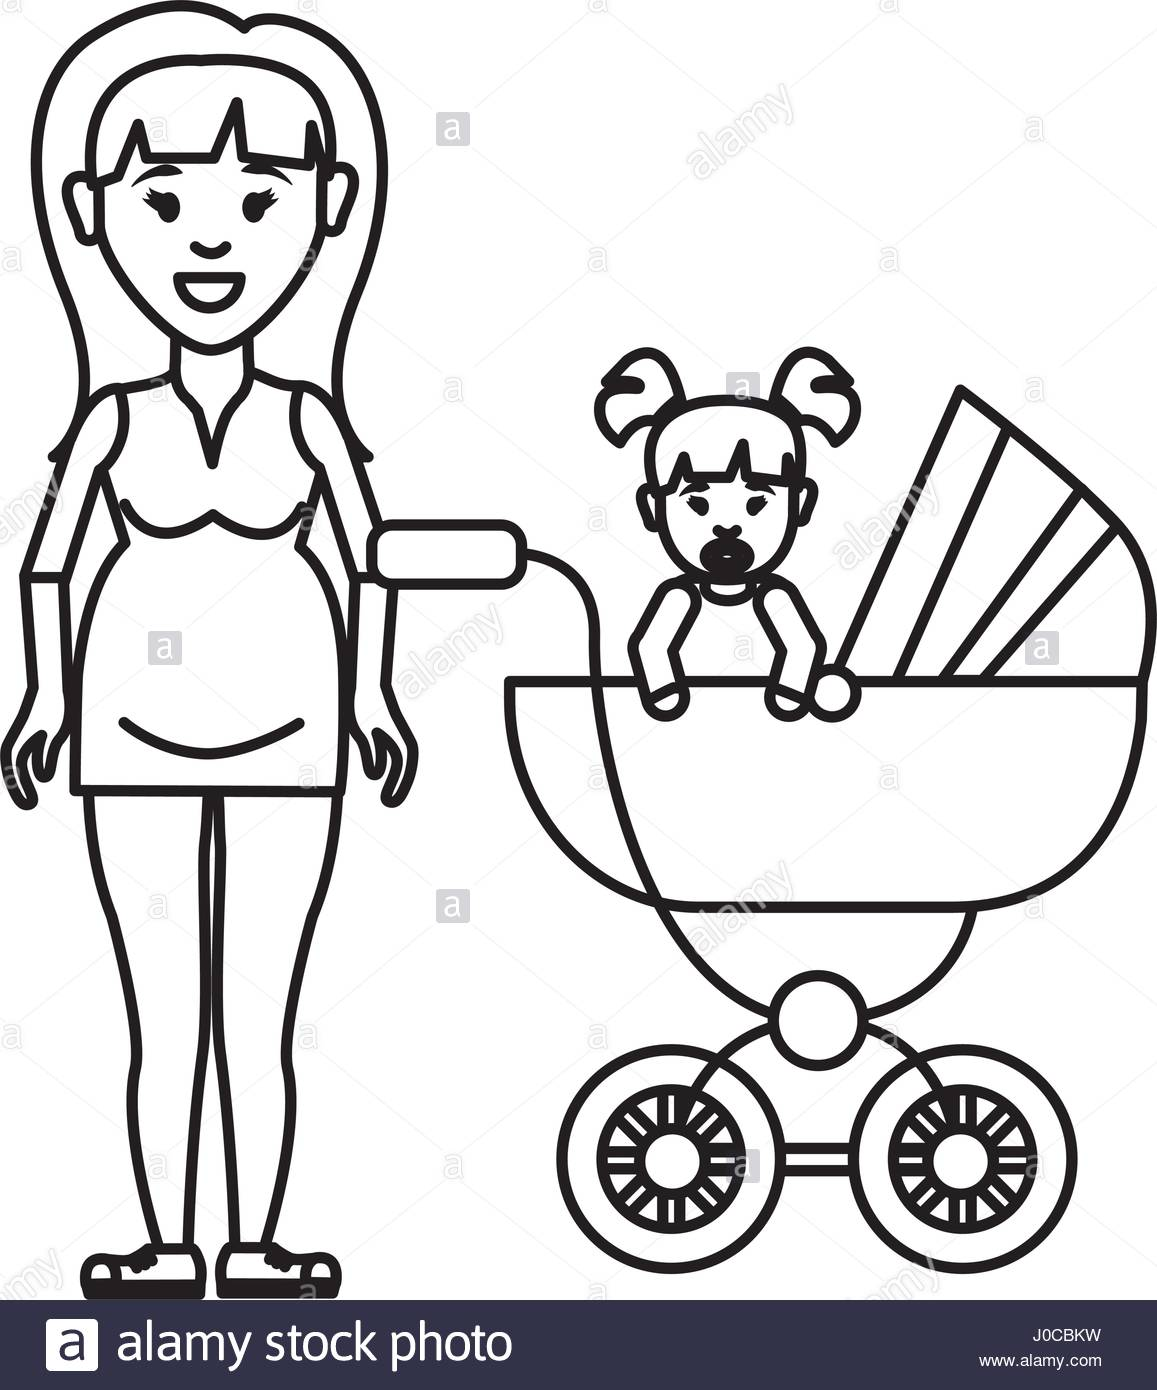 1157x1390 Silhouette Woman Pregnant And Her Baby Icon Stock Vector Art